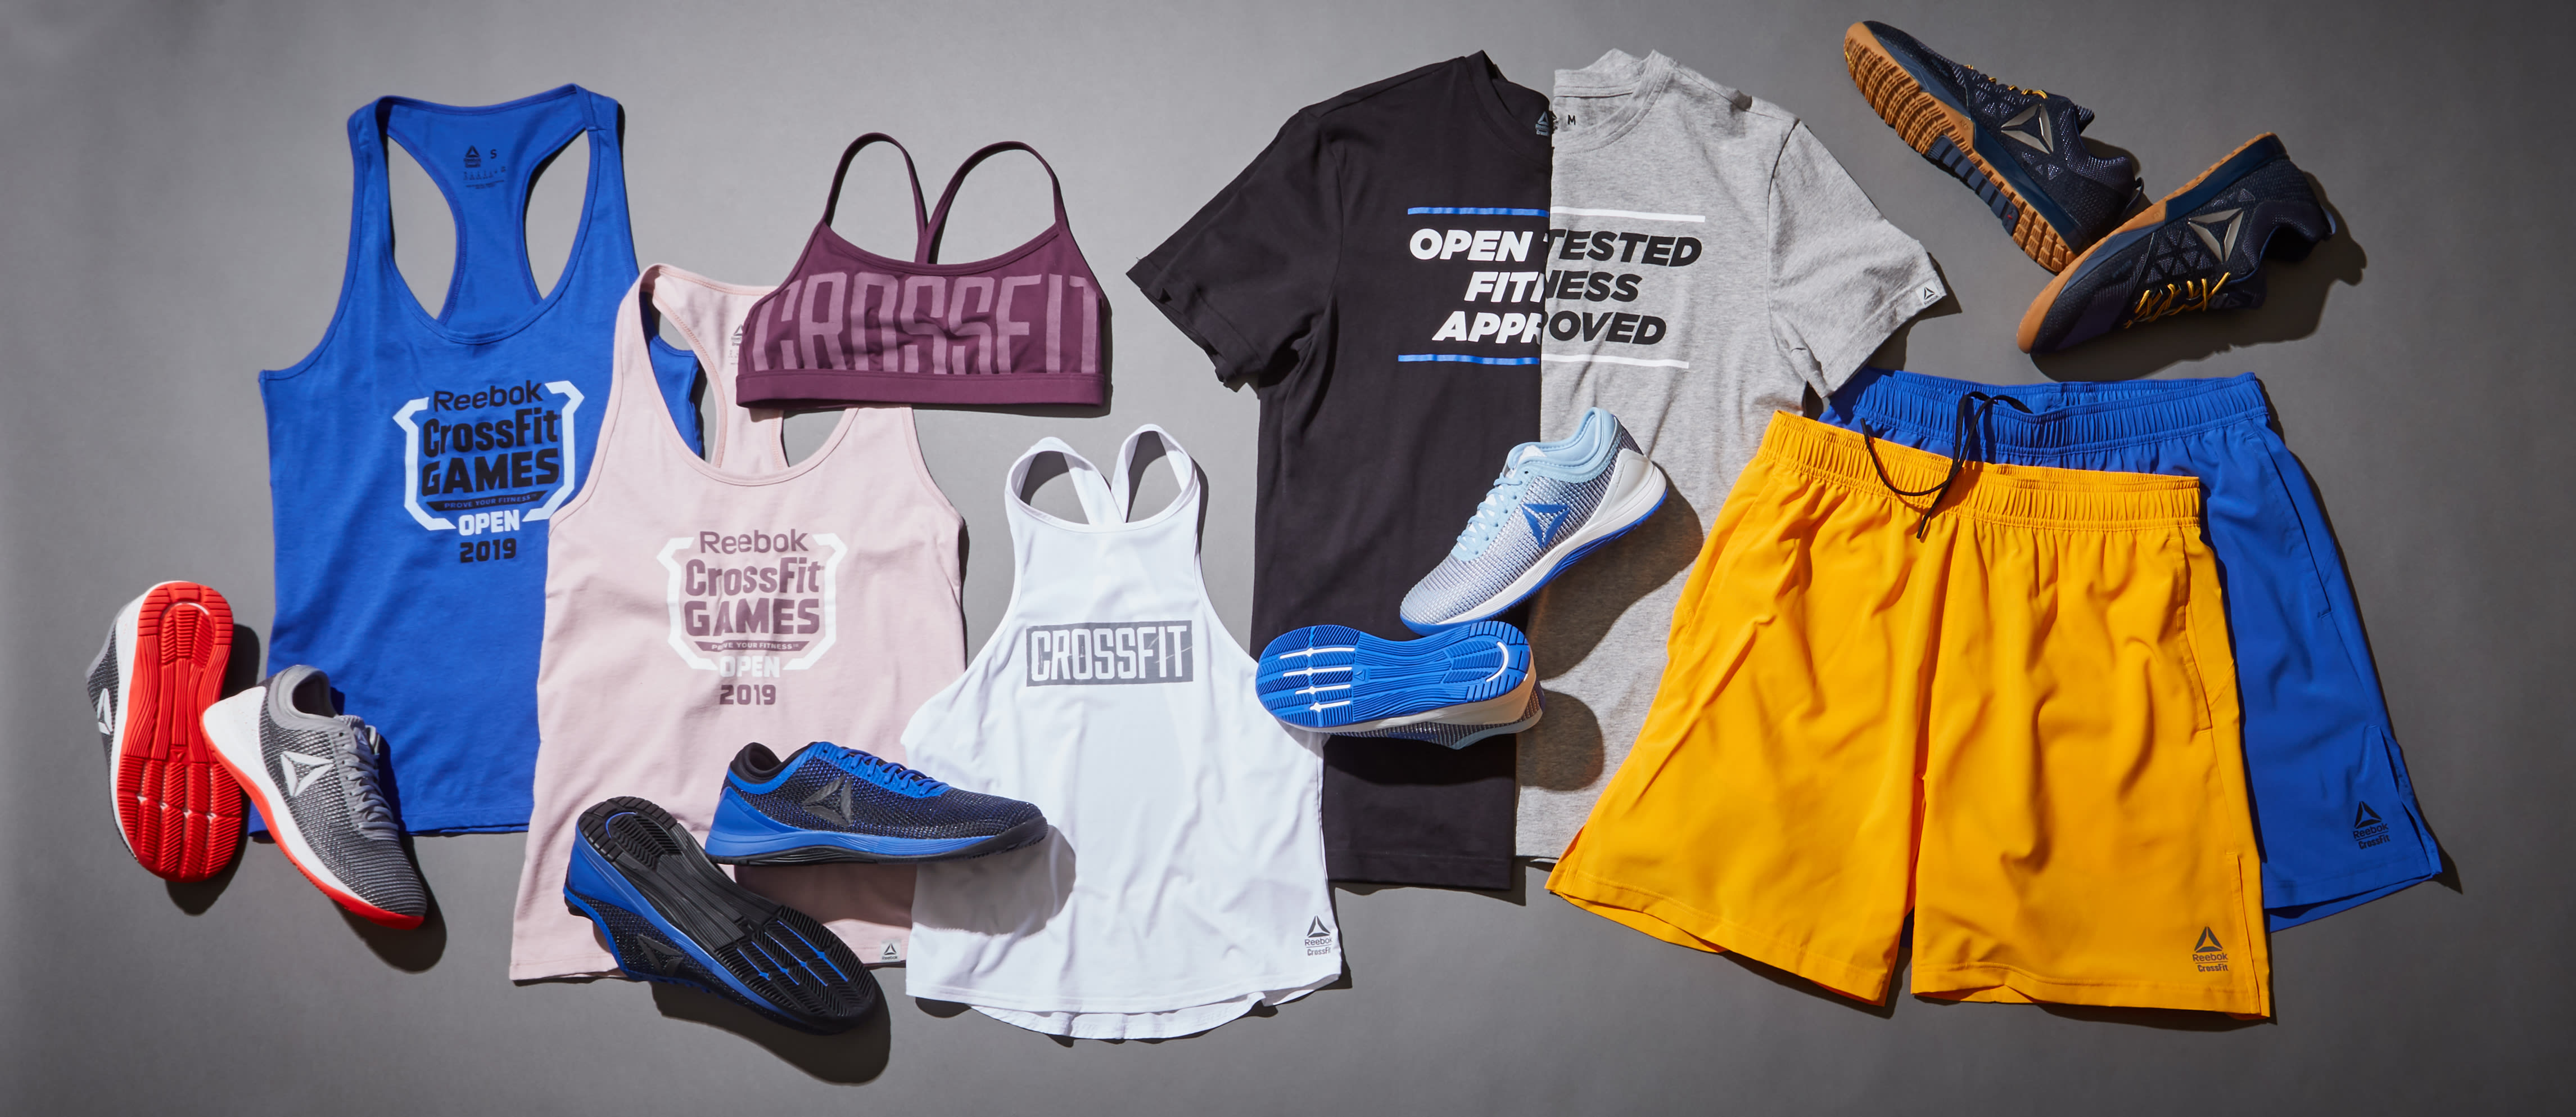 Gear Up For The 2019 CrossFit Open